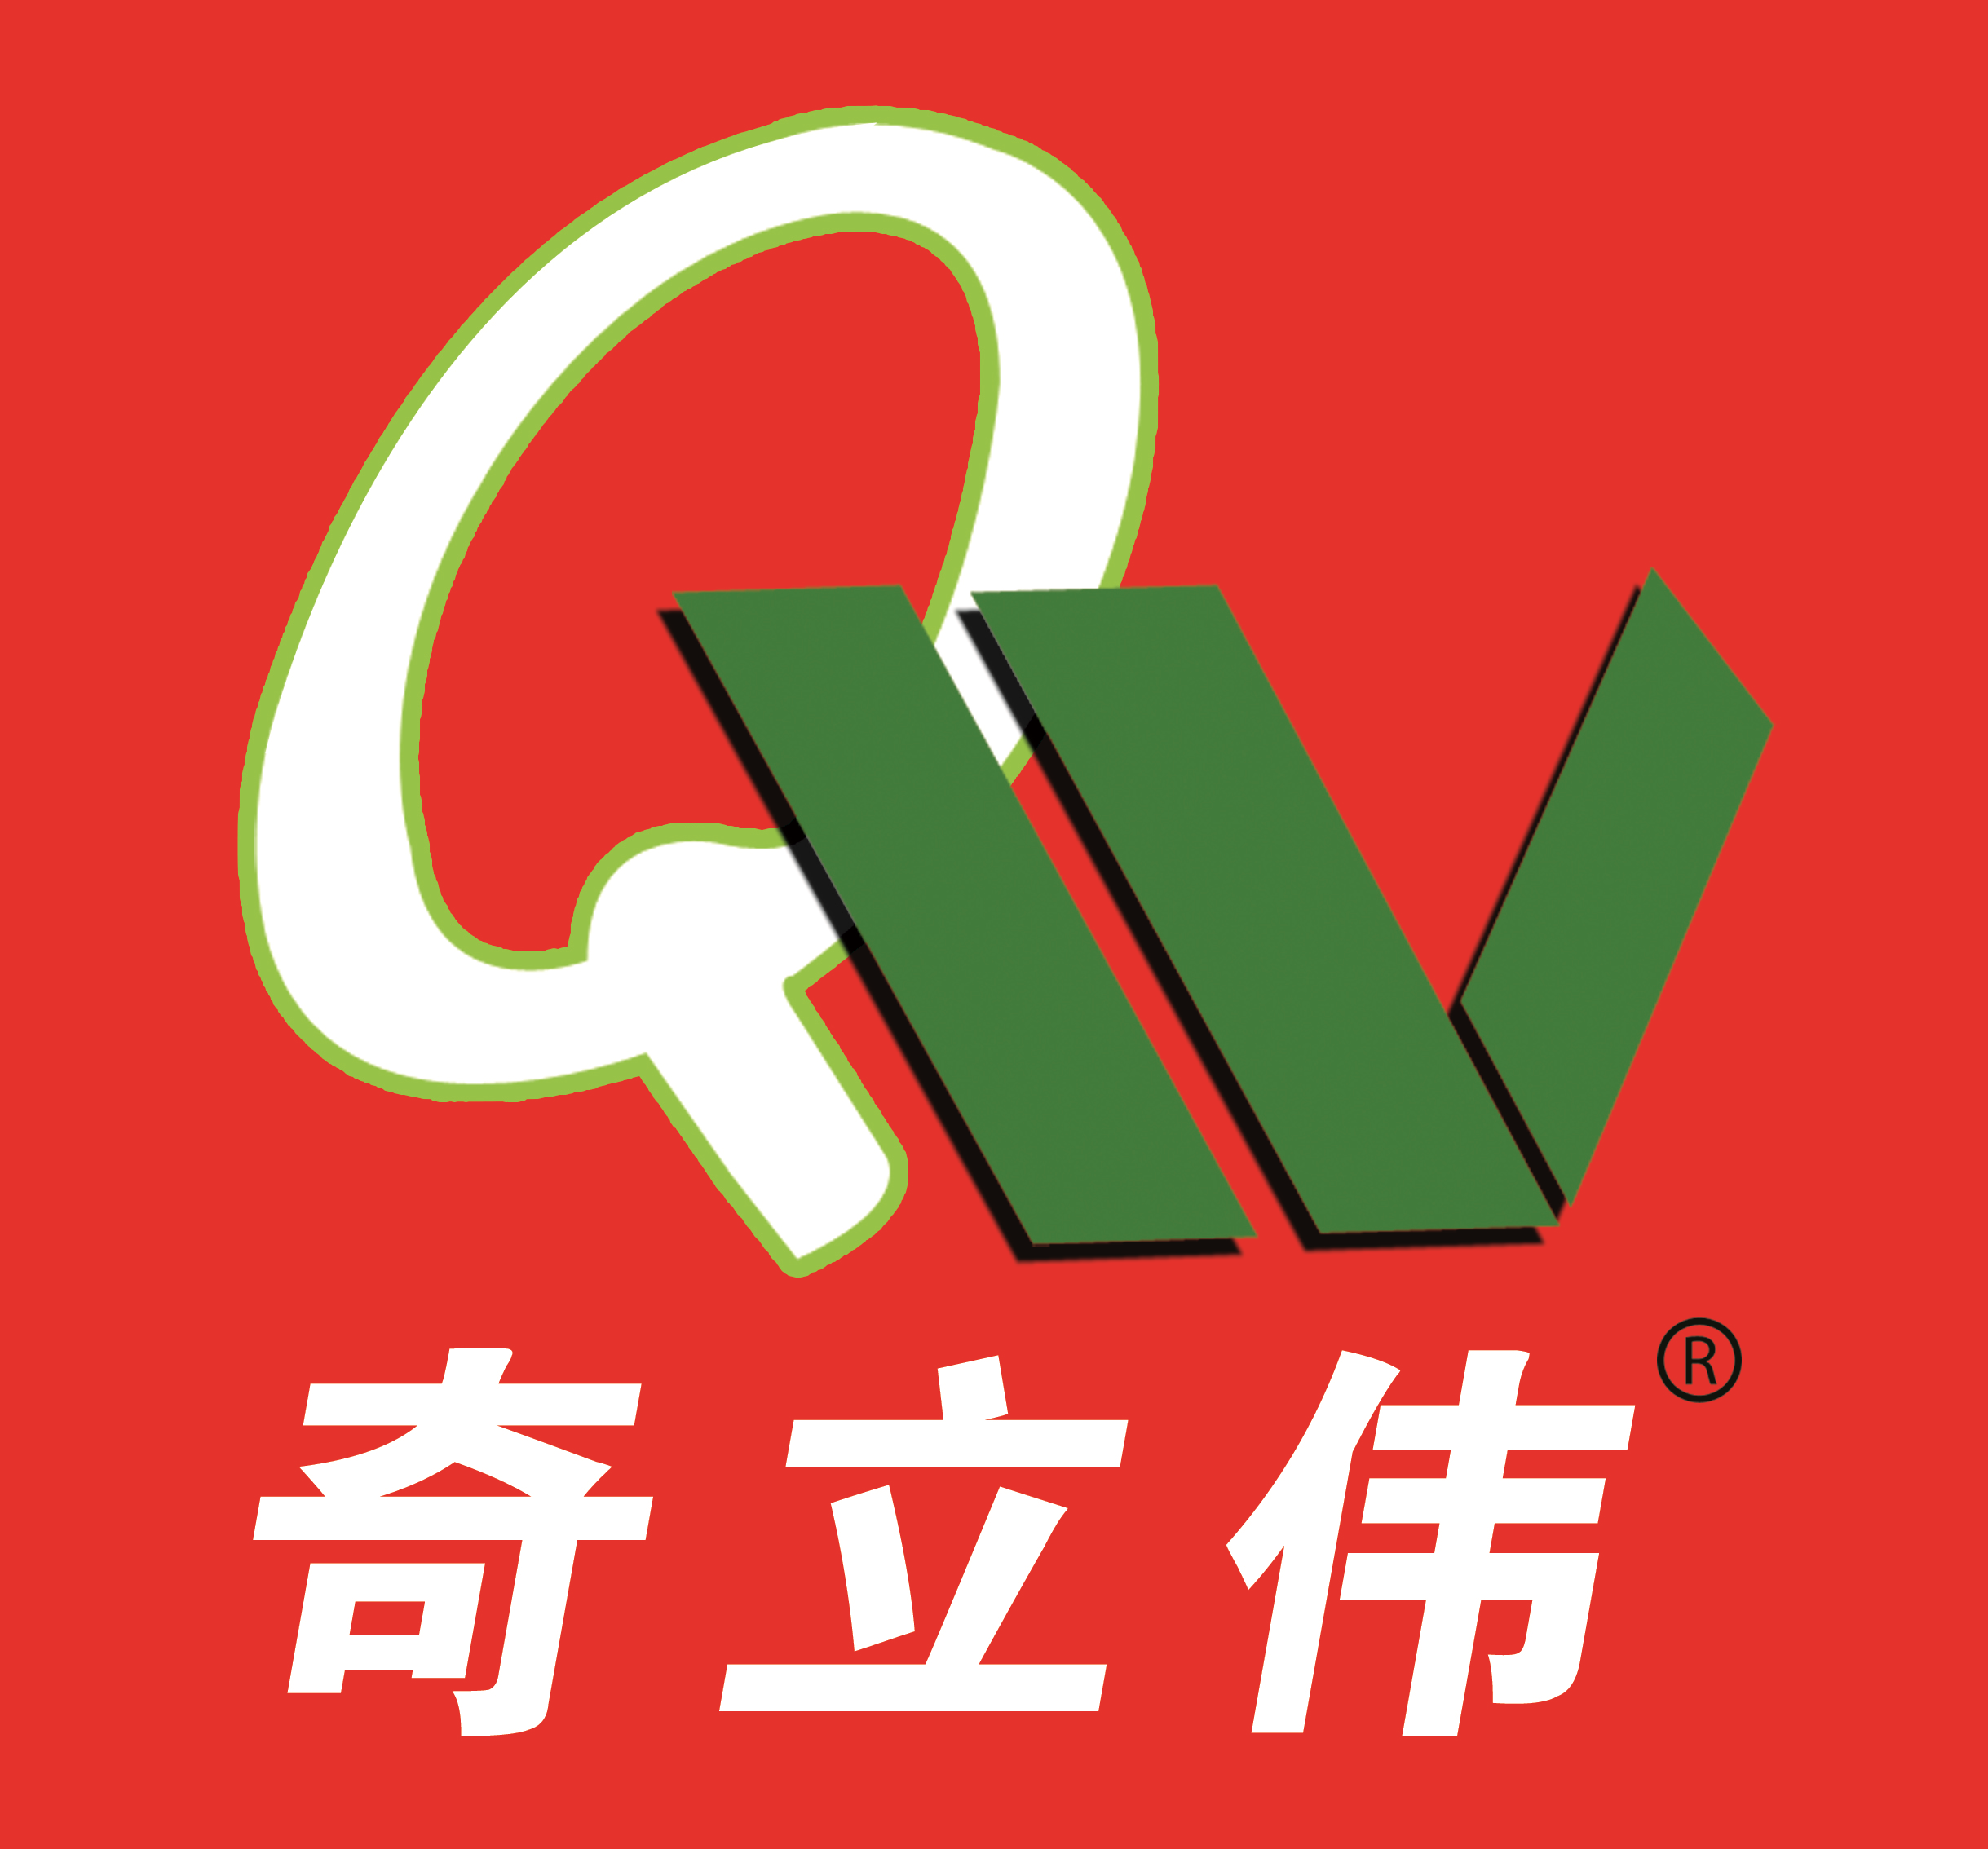 SHANDONG QILIWEI FERTILIZER CO. LTD